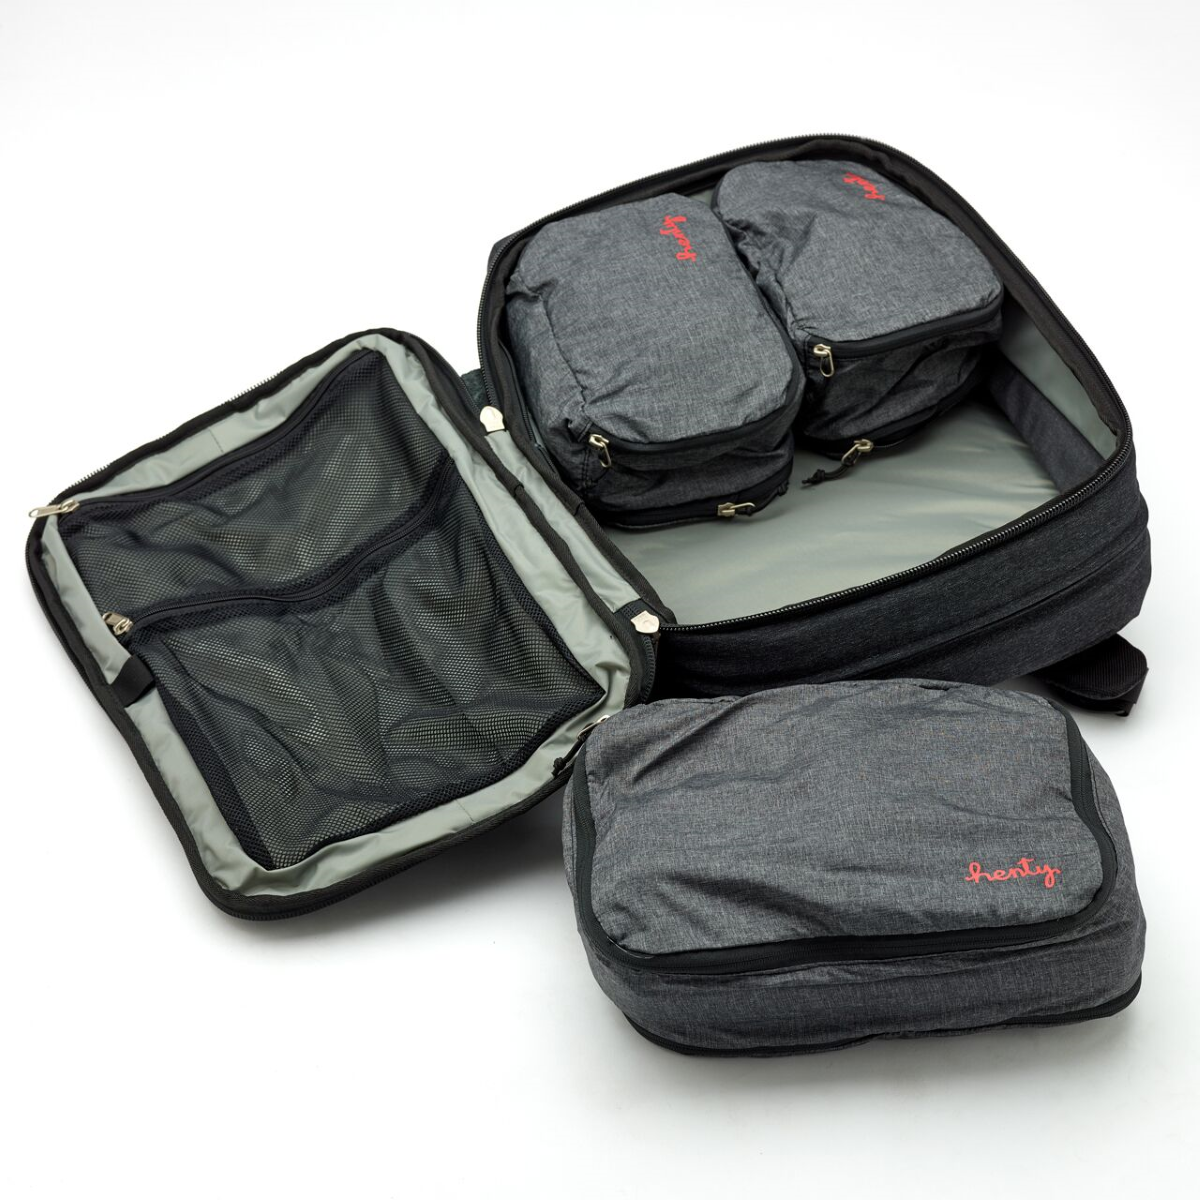 1. Henty Travel Brief Backpack Three Packing Cubes (2)